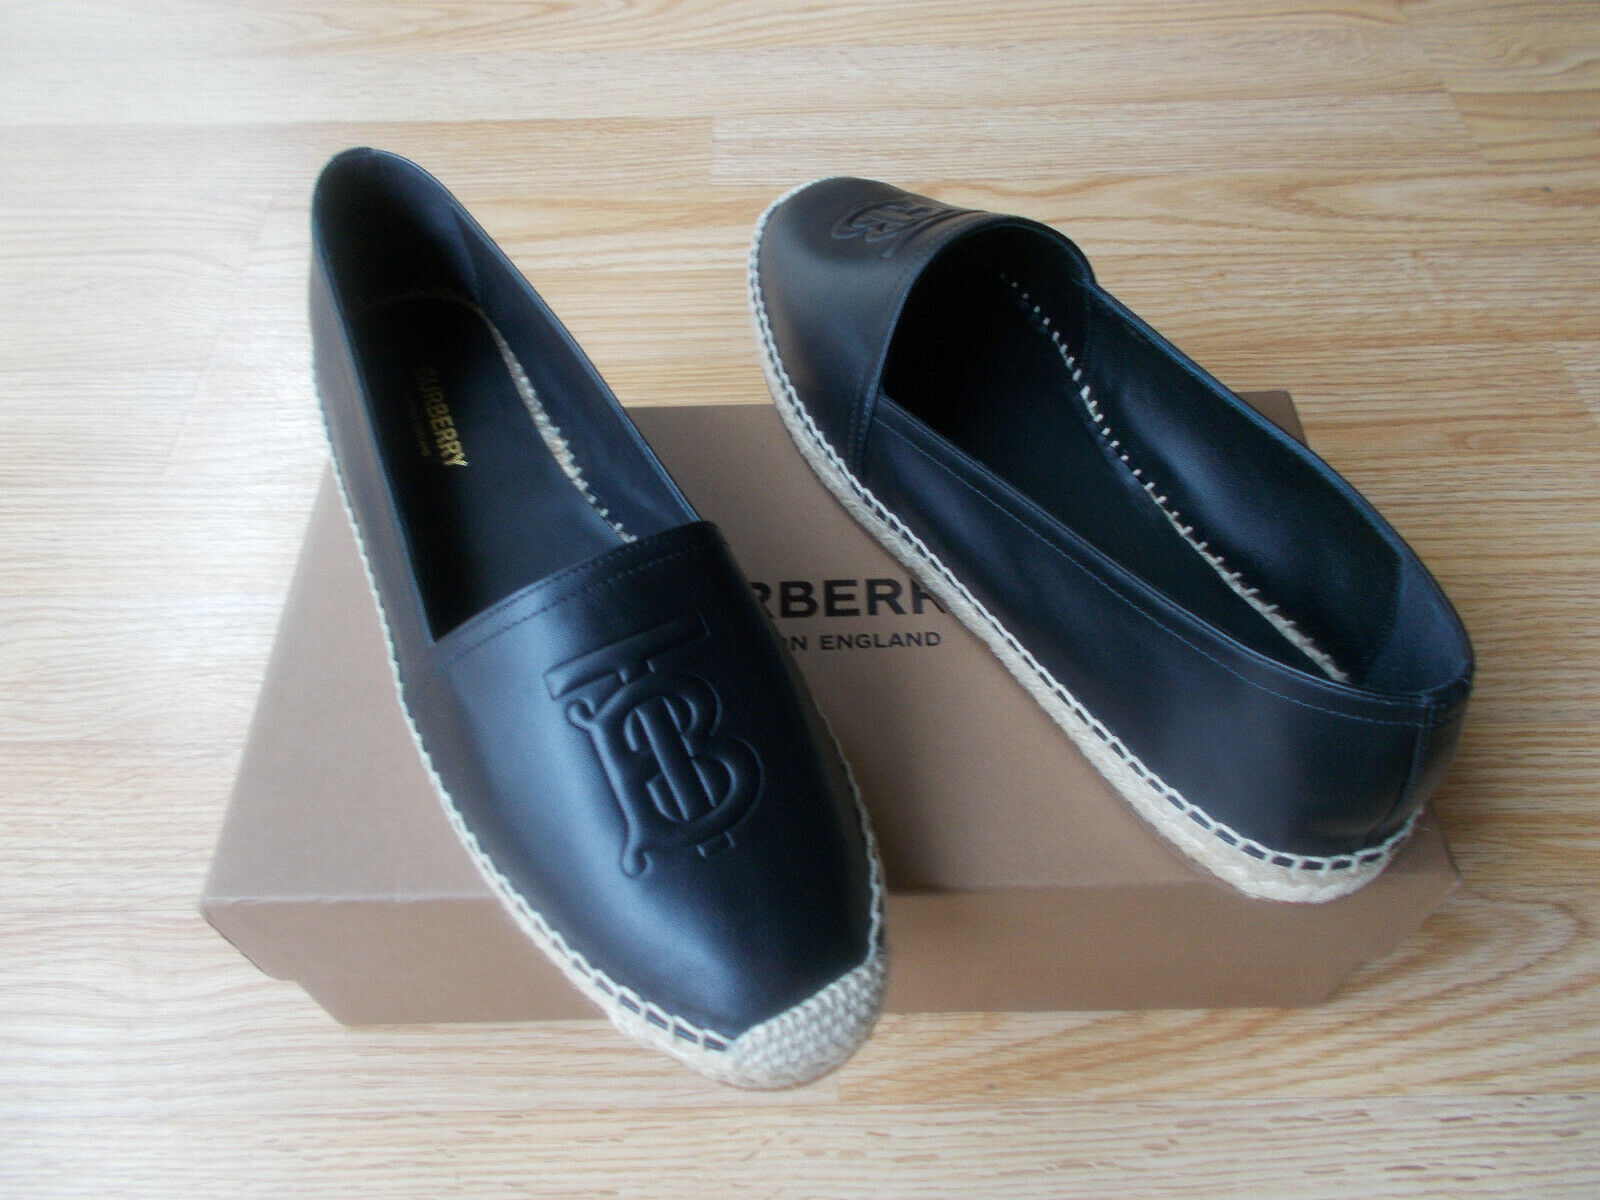 520 Burberry Tabitha Logo Espadrille Flat Shoes Black Leather 41 US 105 11 NIB